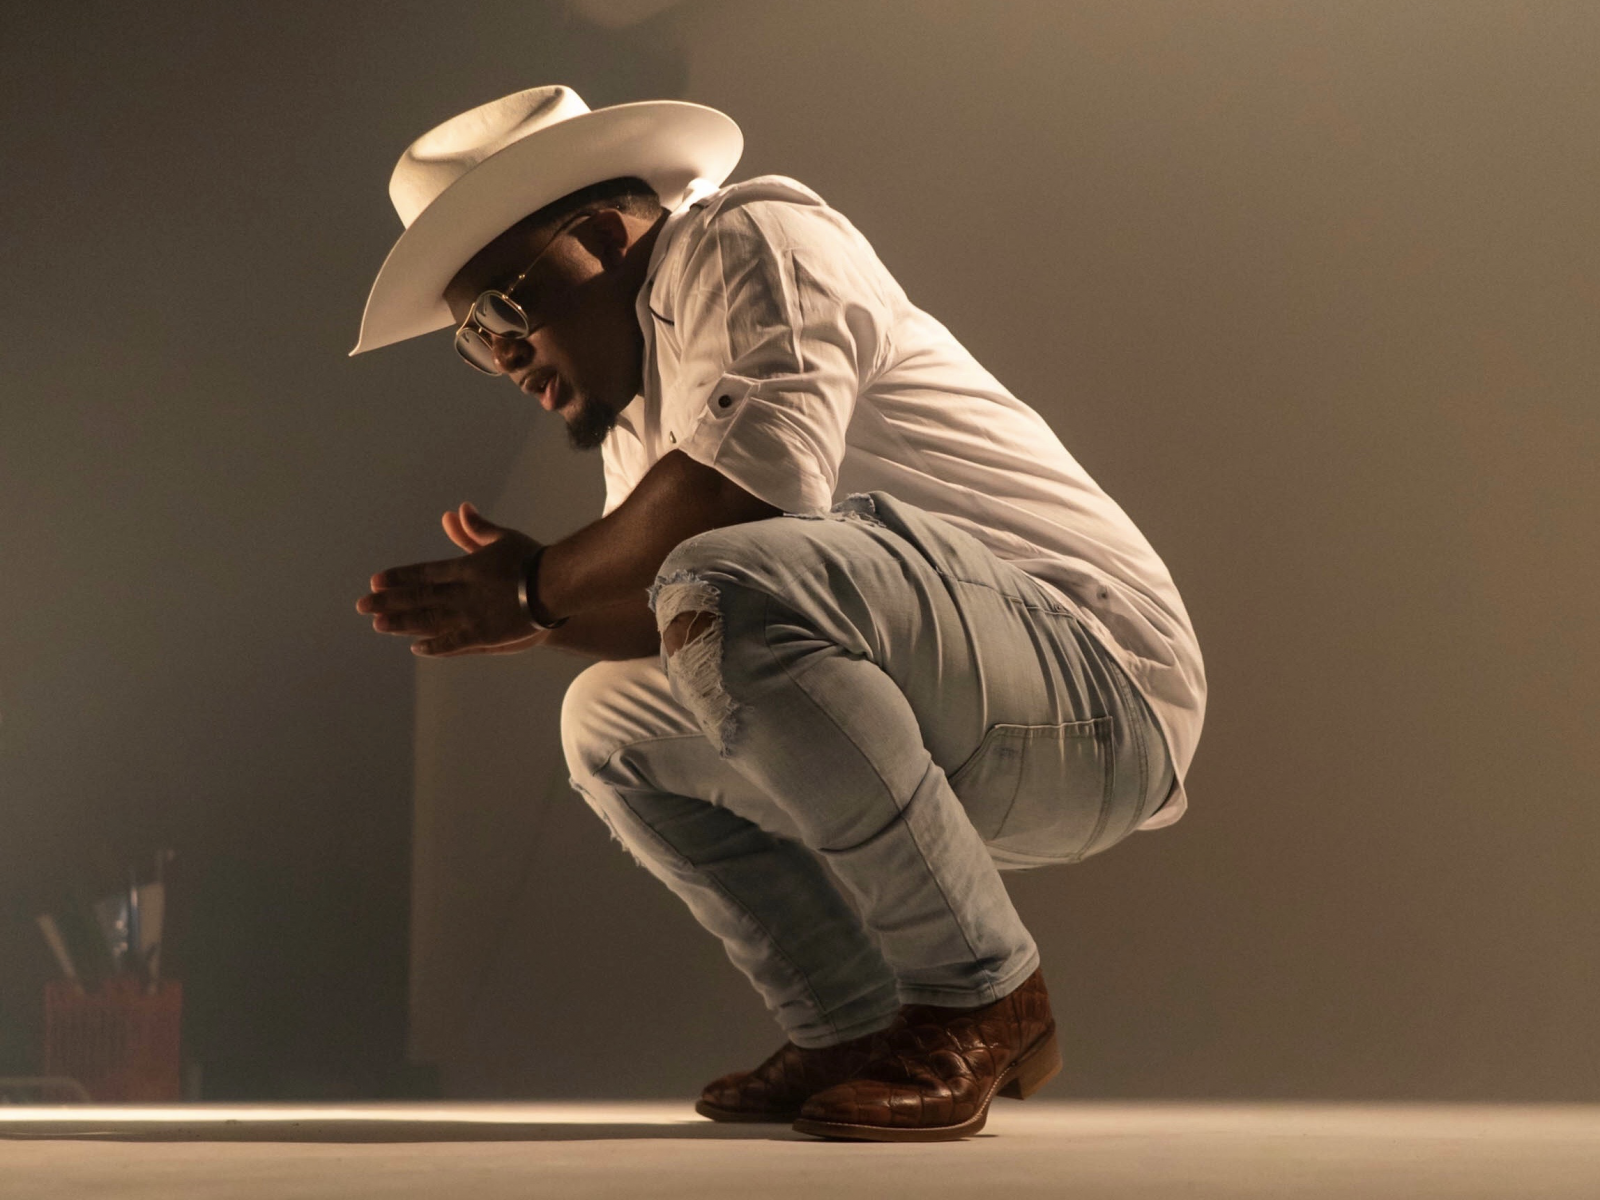 Country Trapper RMR Sets The Stage With Outrageous 'Rascal' Video